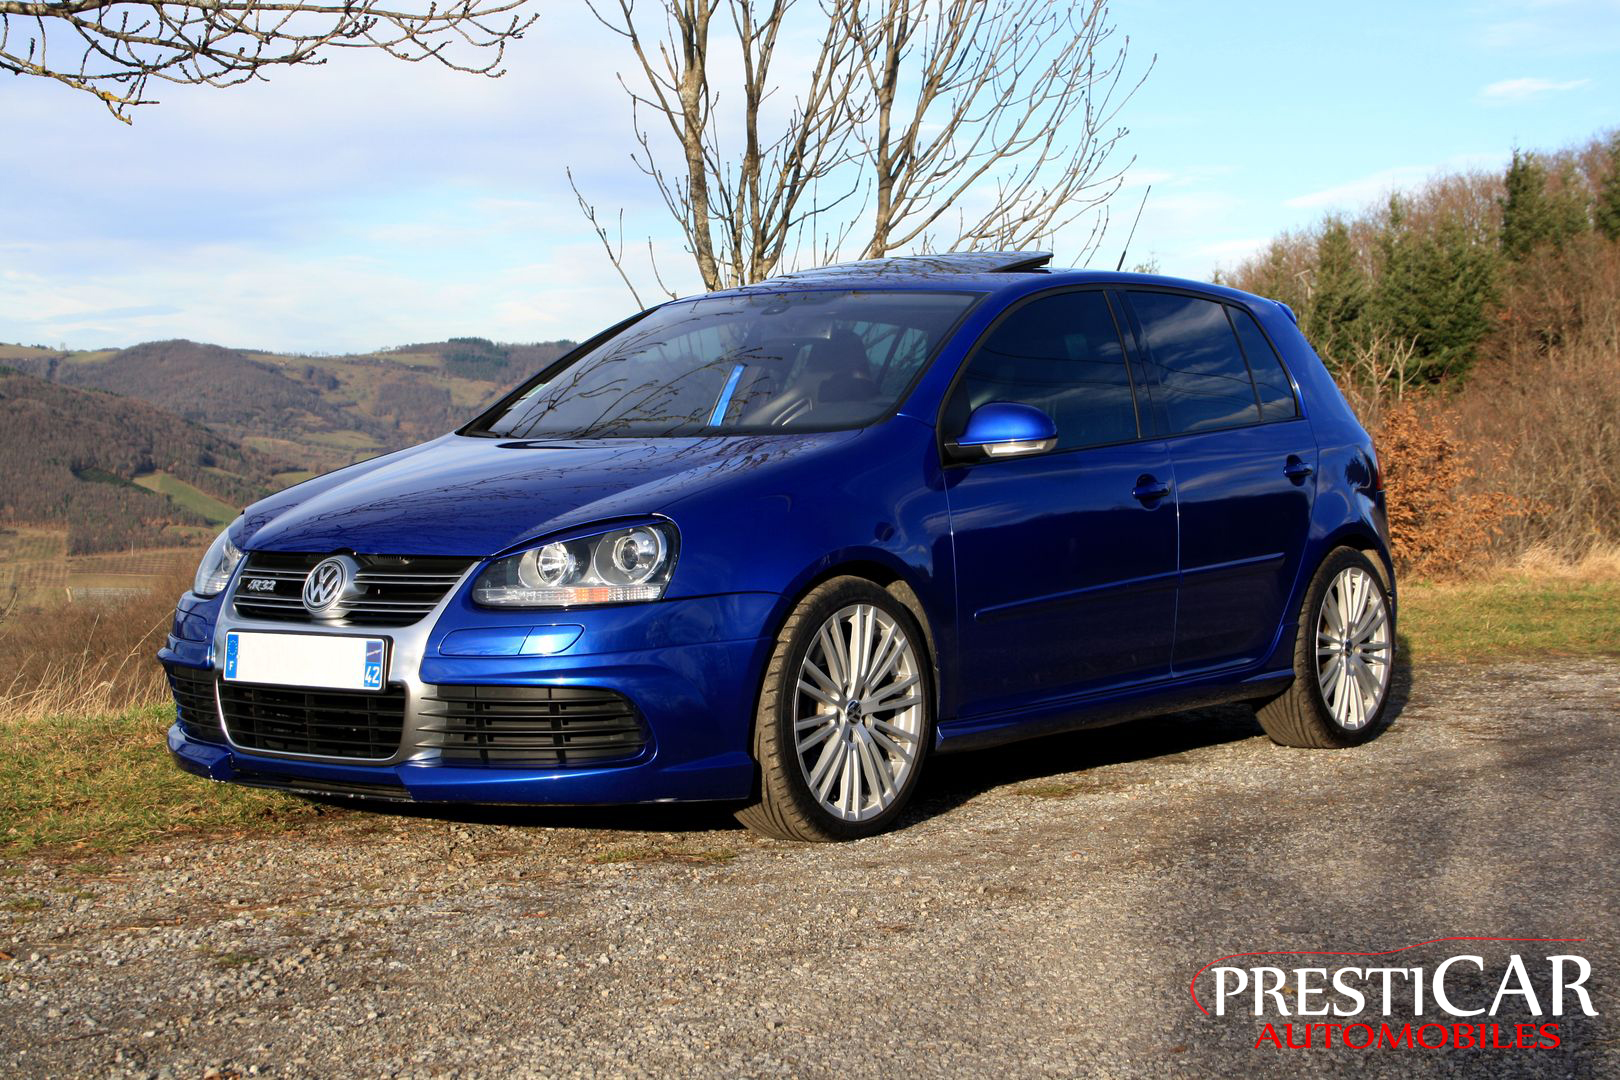 vw golf v r32 3 2 v6 dsg 250 ch presticar automobiles. Black Bedroom Furniture Sets. Home Design Ideas